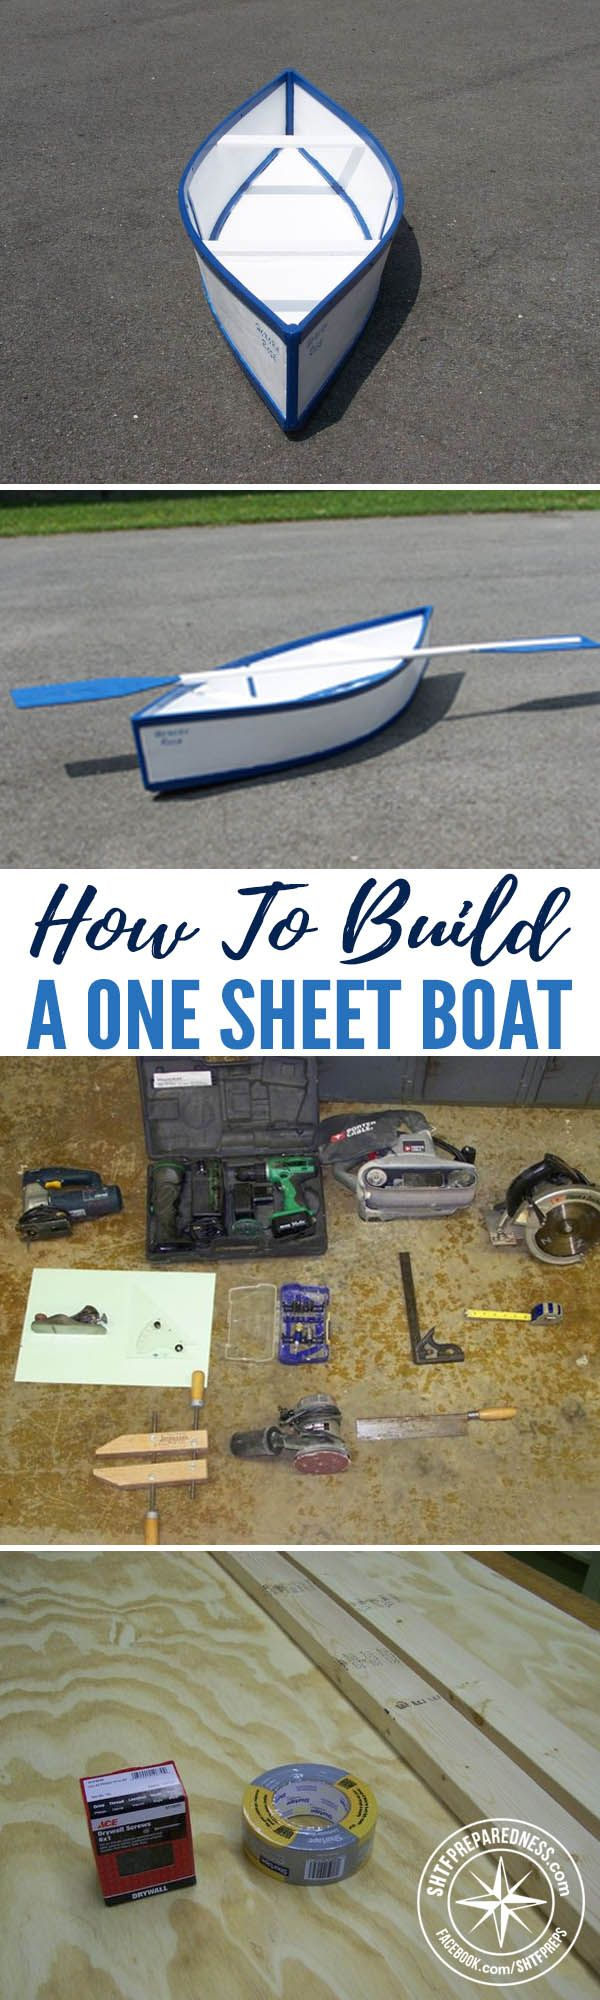 How To Build a One Sheet Boat — Having a boat can be great- you can catch your own fish, have fun out on a lake, or if the situations calls for it, get out of Dodge! Boats can be expensive, though, and if you can afford a larger one you'll also have to worry about storing it.